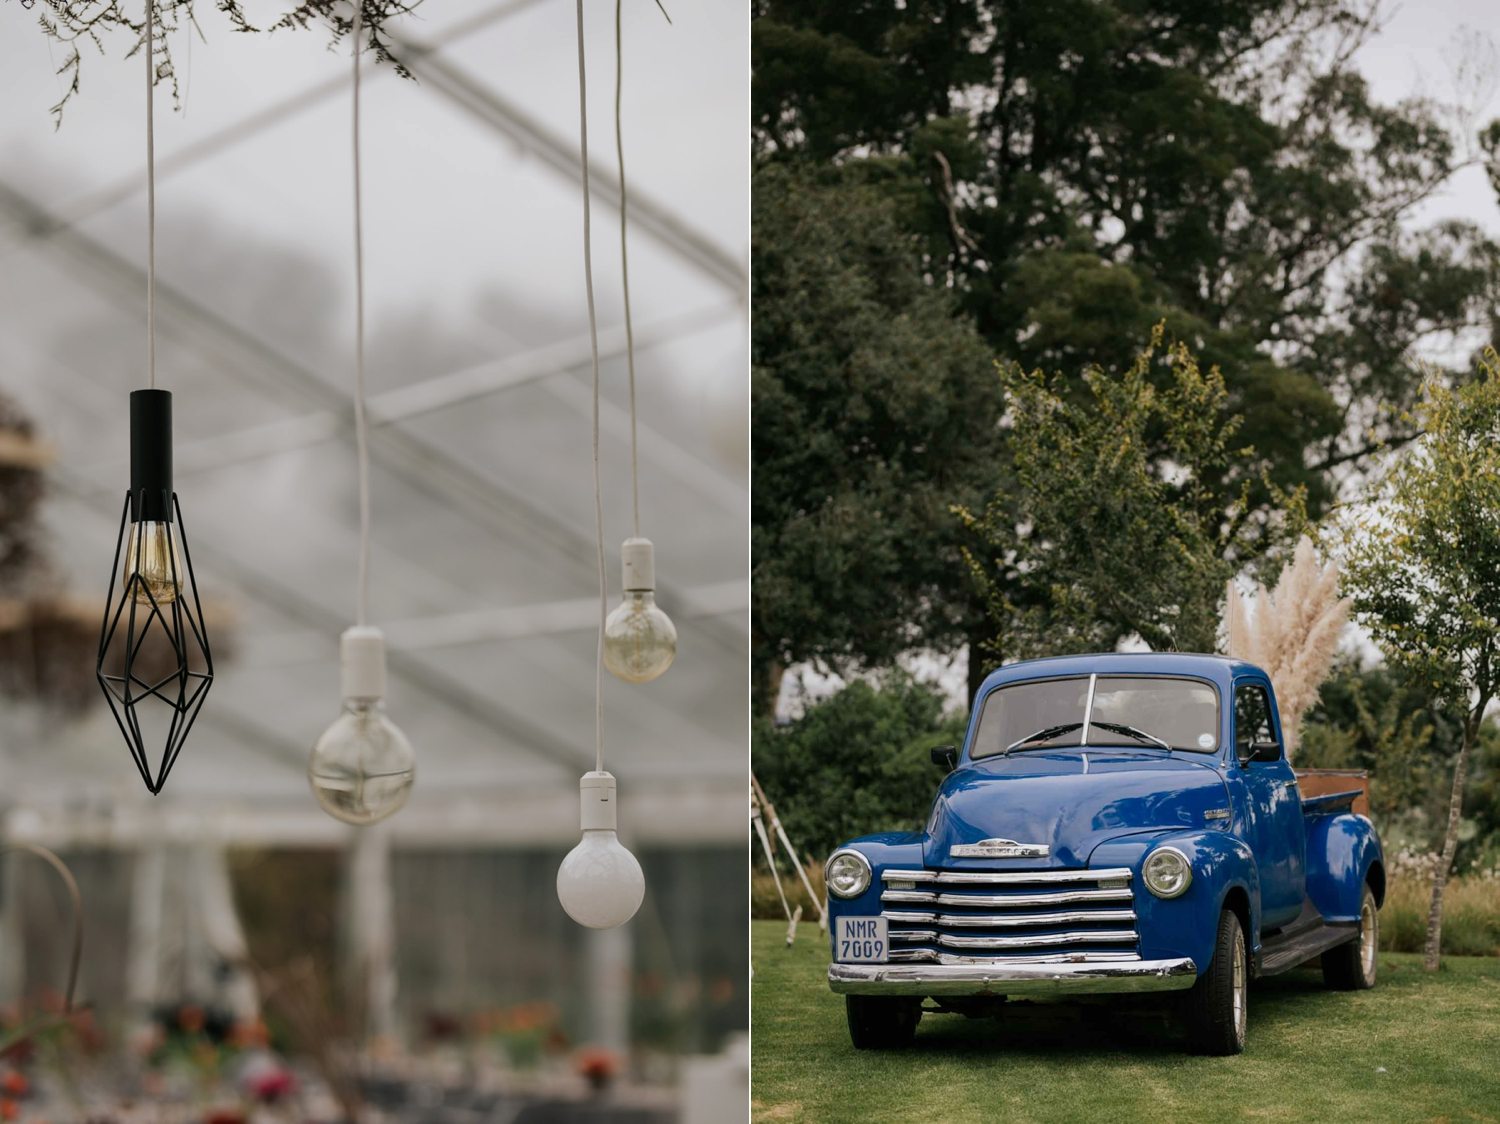 Geometric shaped Eddison light bulbs hanging from tent for wedding decor and a old vintage blue farm truck